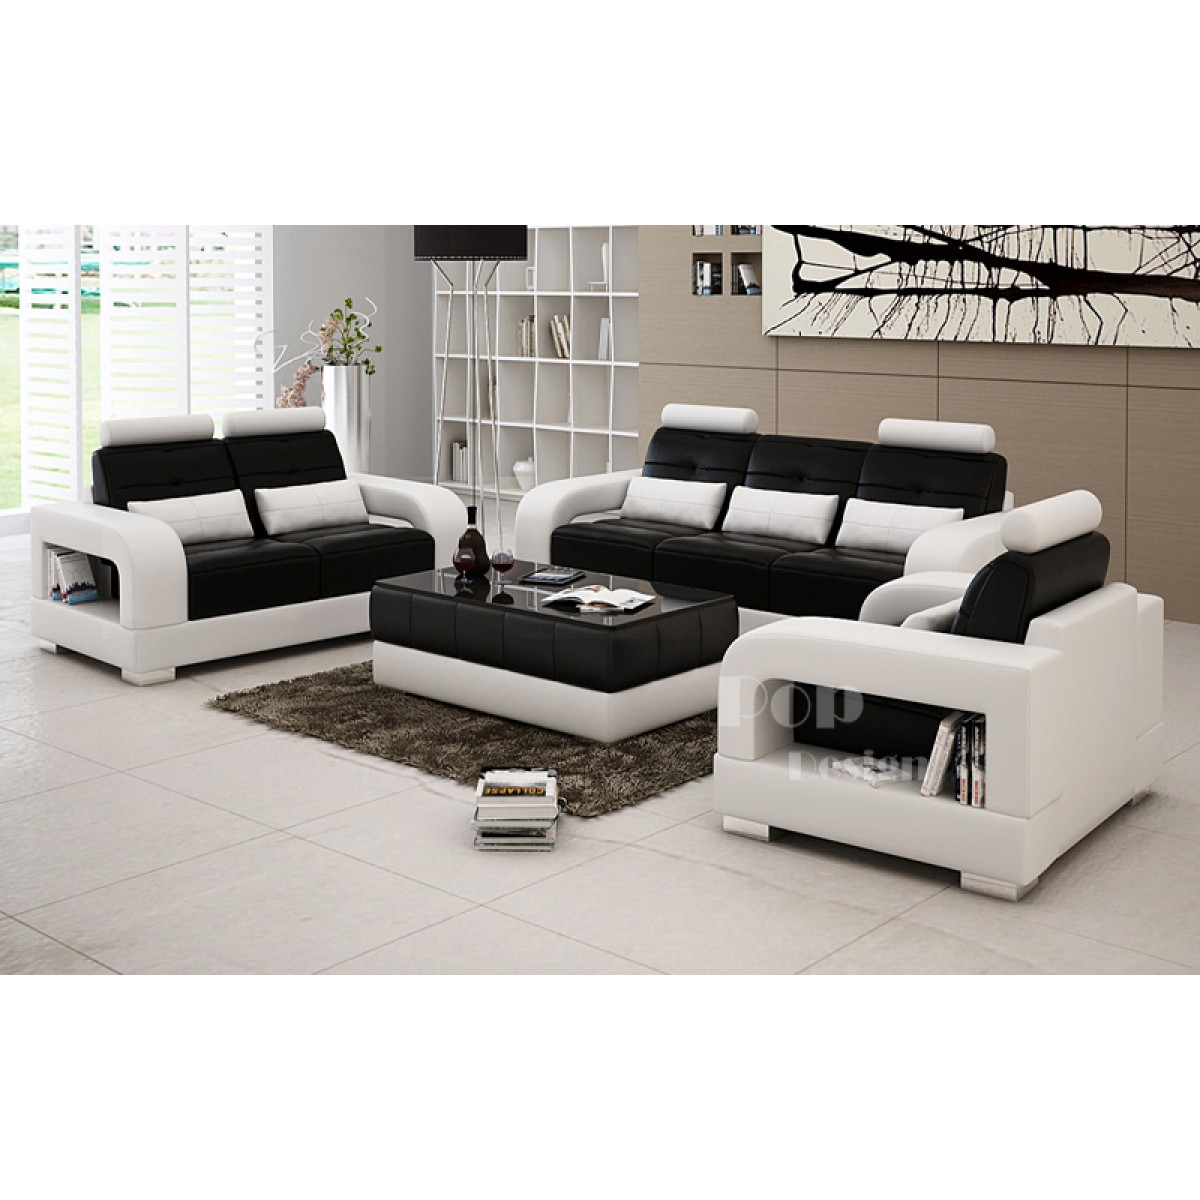 salon set canap s personnalisable en cuir design salerno pop. Black Bedroom Furniture Sets. Home Design Ideas